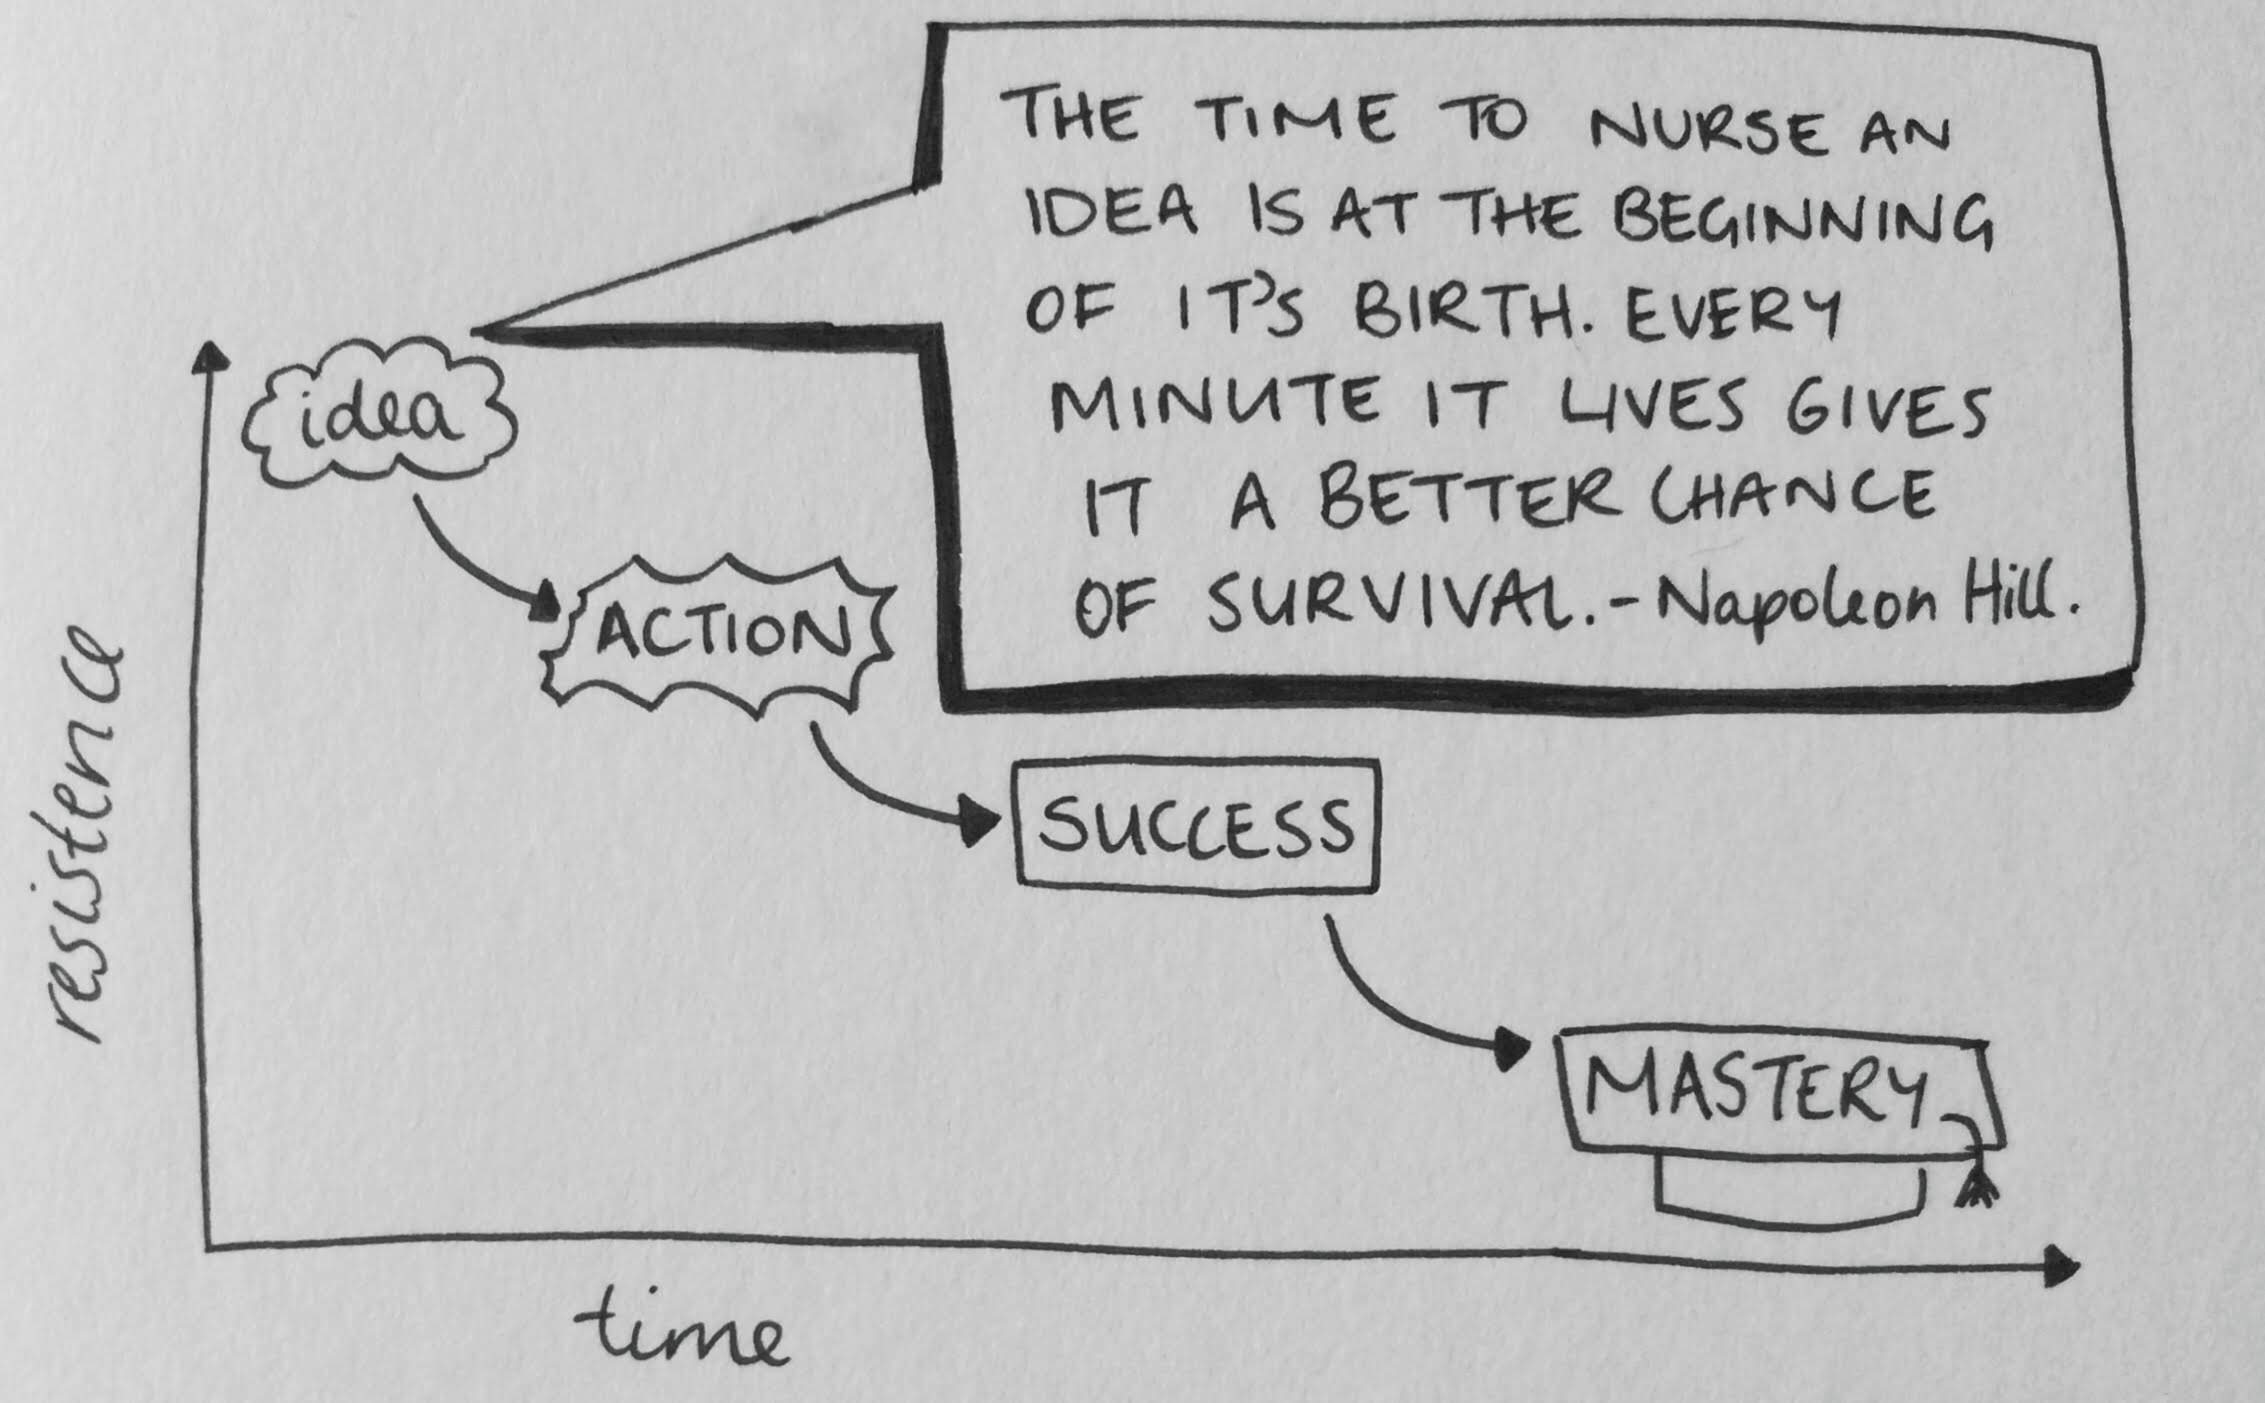 The time to nurse an idead is at the beginning of it's birth. Every minute it lives gives it a better chance of survival. - Napoleon Hill